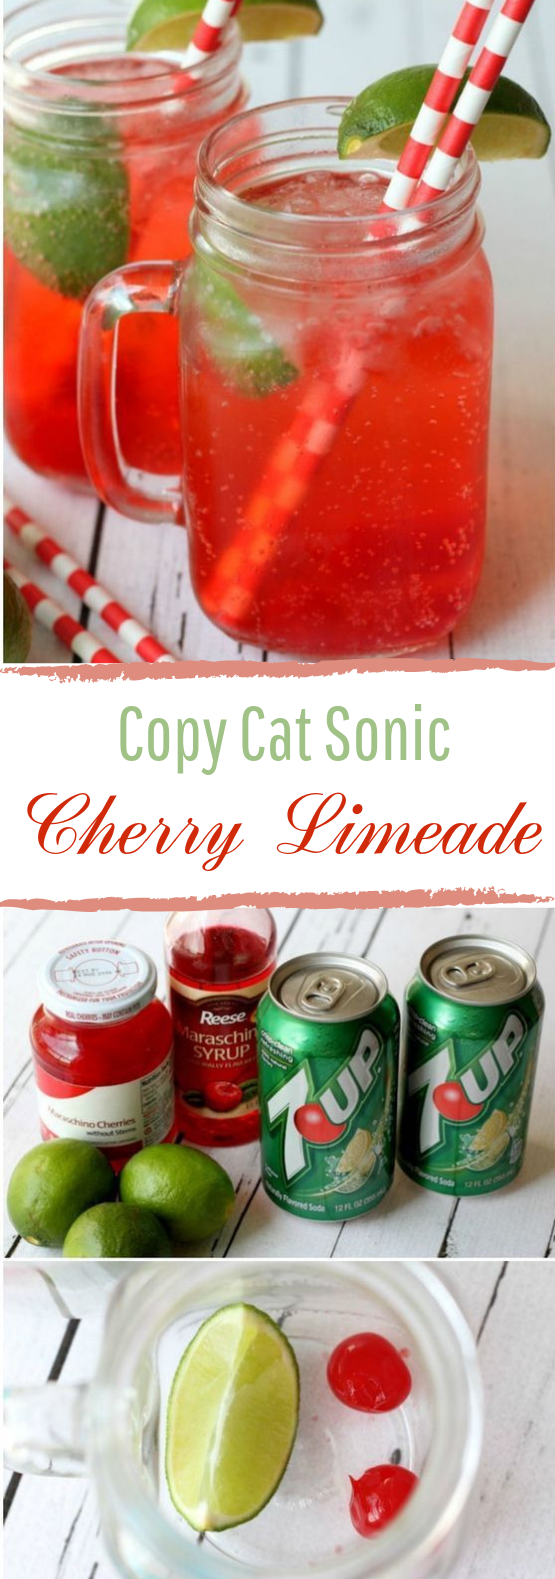 Copycat Sonic Cherry Limeade #nonalcohol #drinks